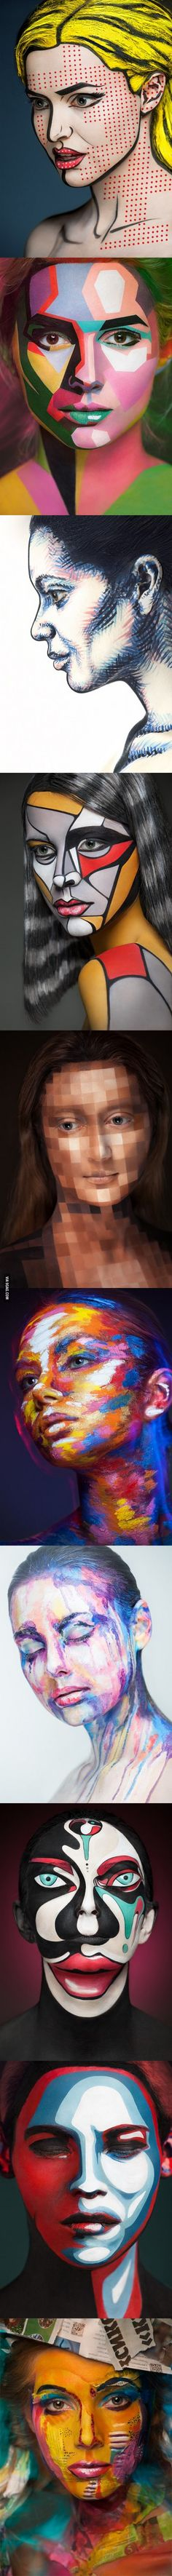 Incredible photographs of people wearing face paint. Some are great examples for planes when painting